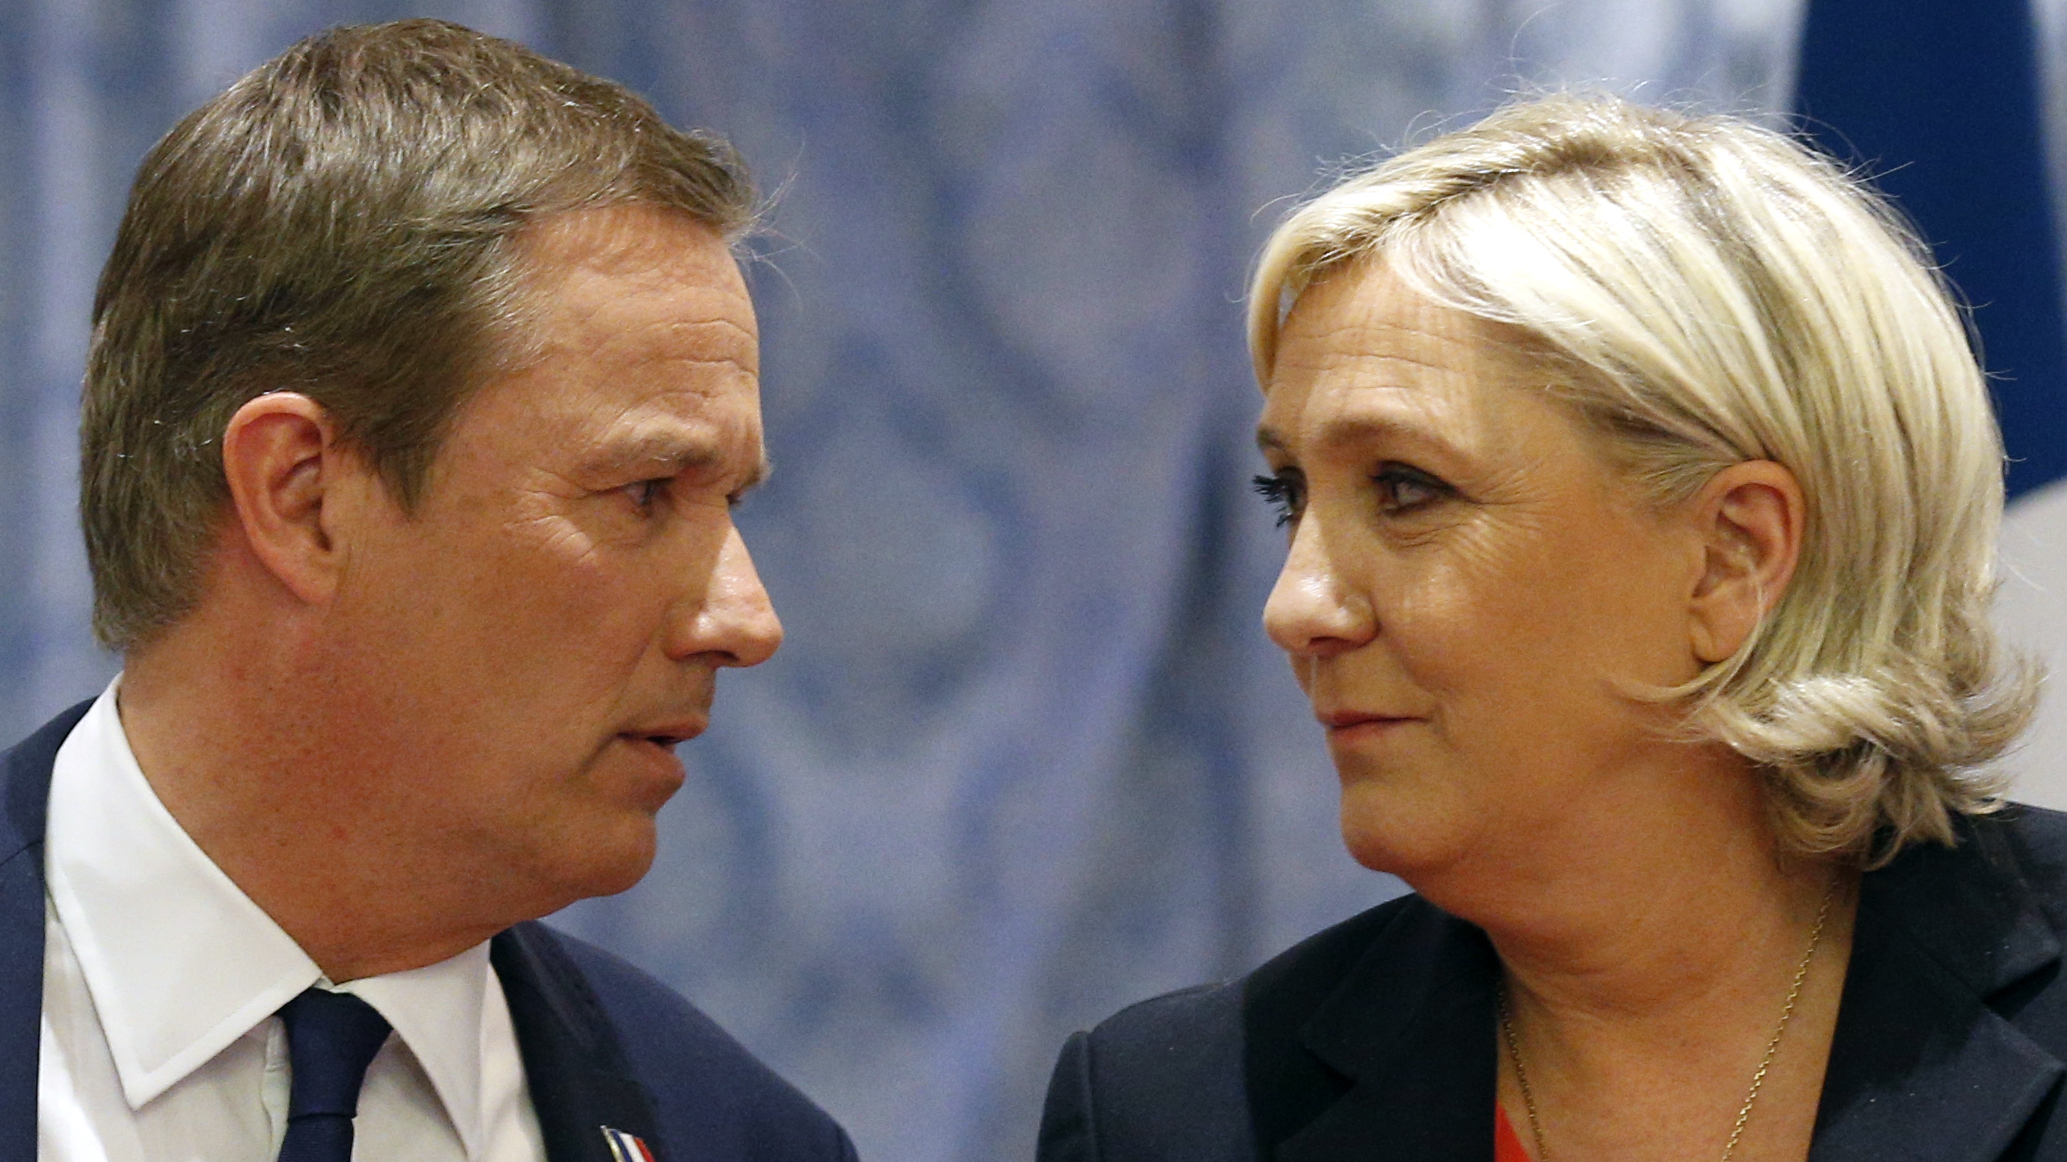 Nicolas Dupont-Aignan (L) and Marine Le Pen, at a joint press conference in Paris, on April 29, 2017, where Le Pen declared she would appoint Dupont-Aignan prime minister if elected. / AFP PHOTO / GEOFFROY VAN DER HASSELT (Photo credit should read GEOFFROY VAN DER HASSELT/AFP/Getty Images)